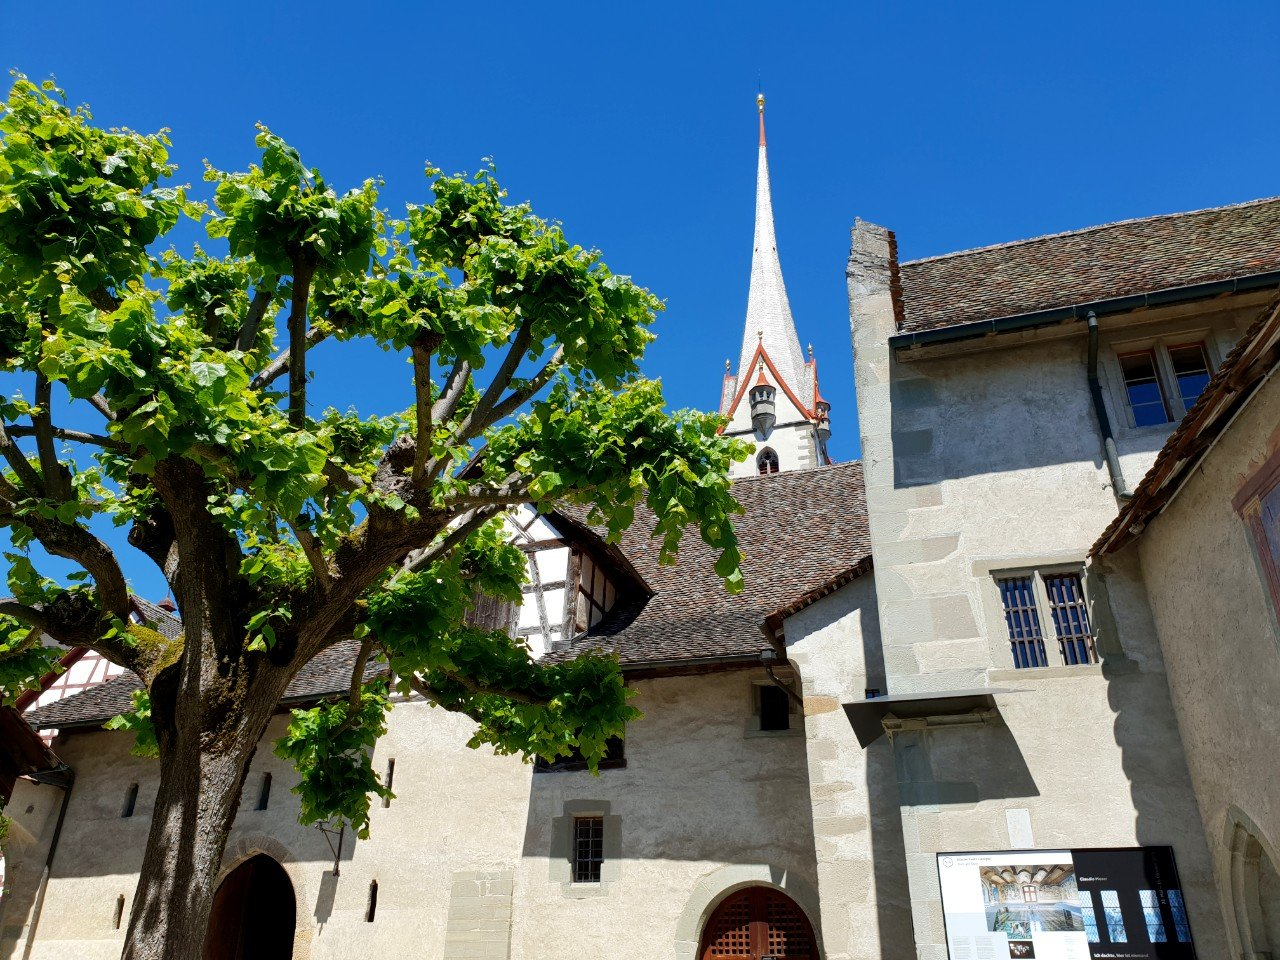 Church and Abbey in Stein am Rhein, Switzerland.